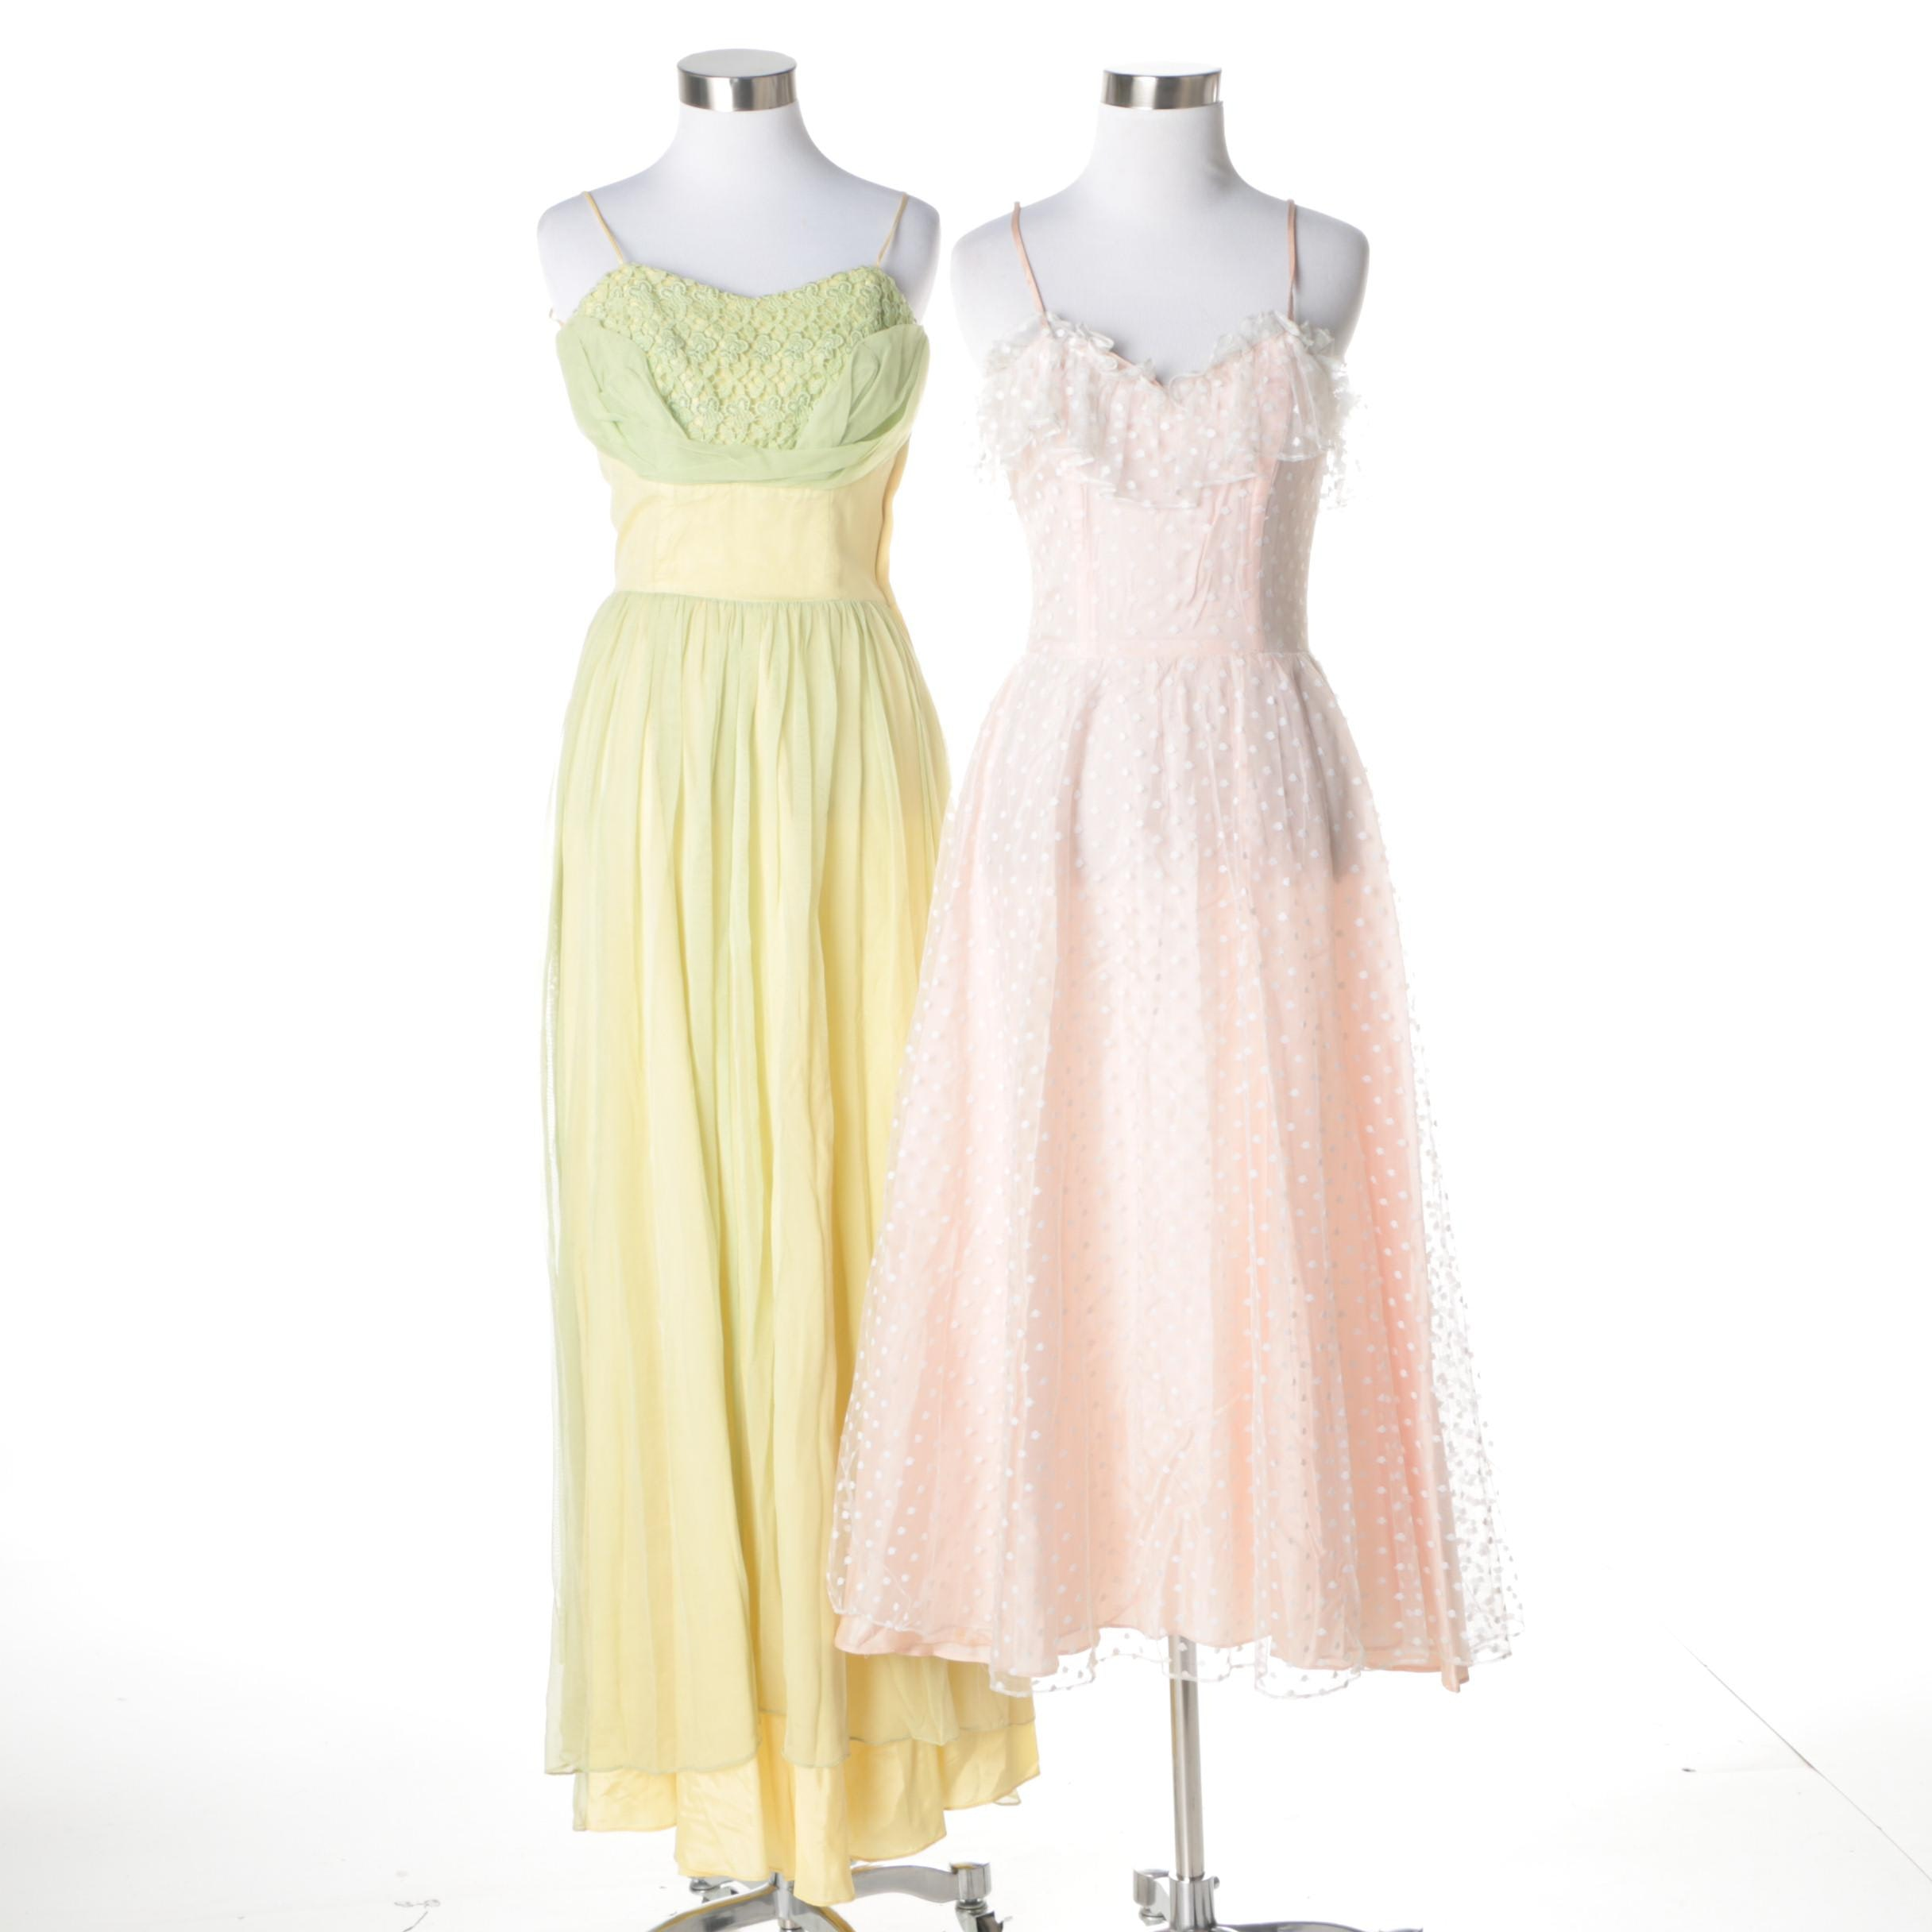 Vintage Sleeveless Party Frocks